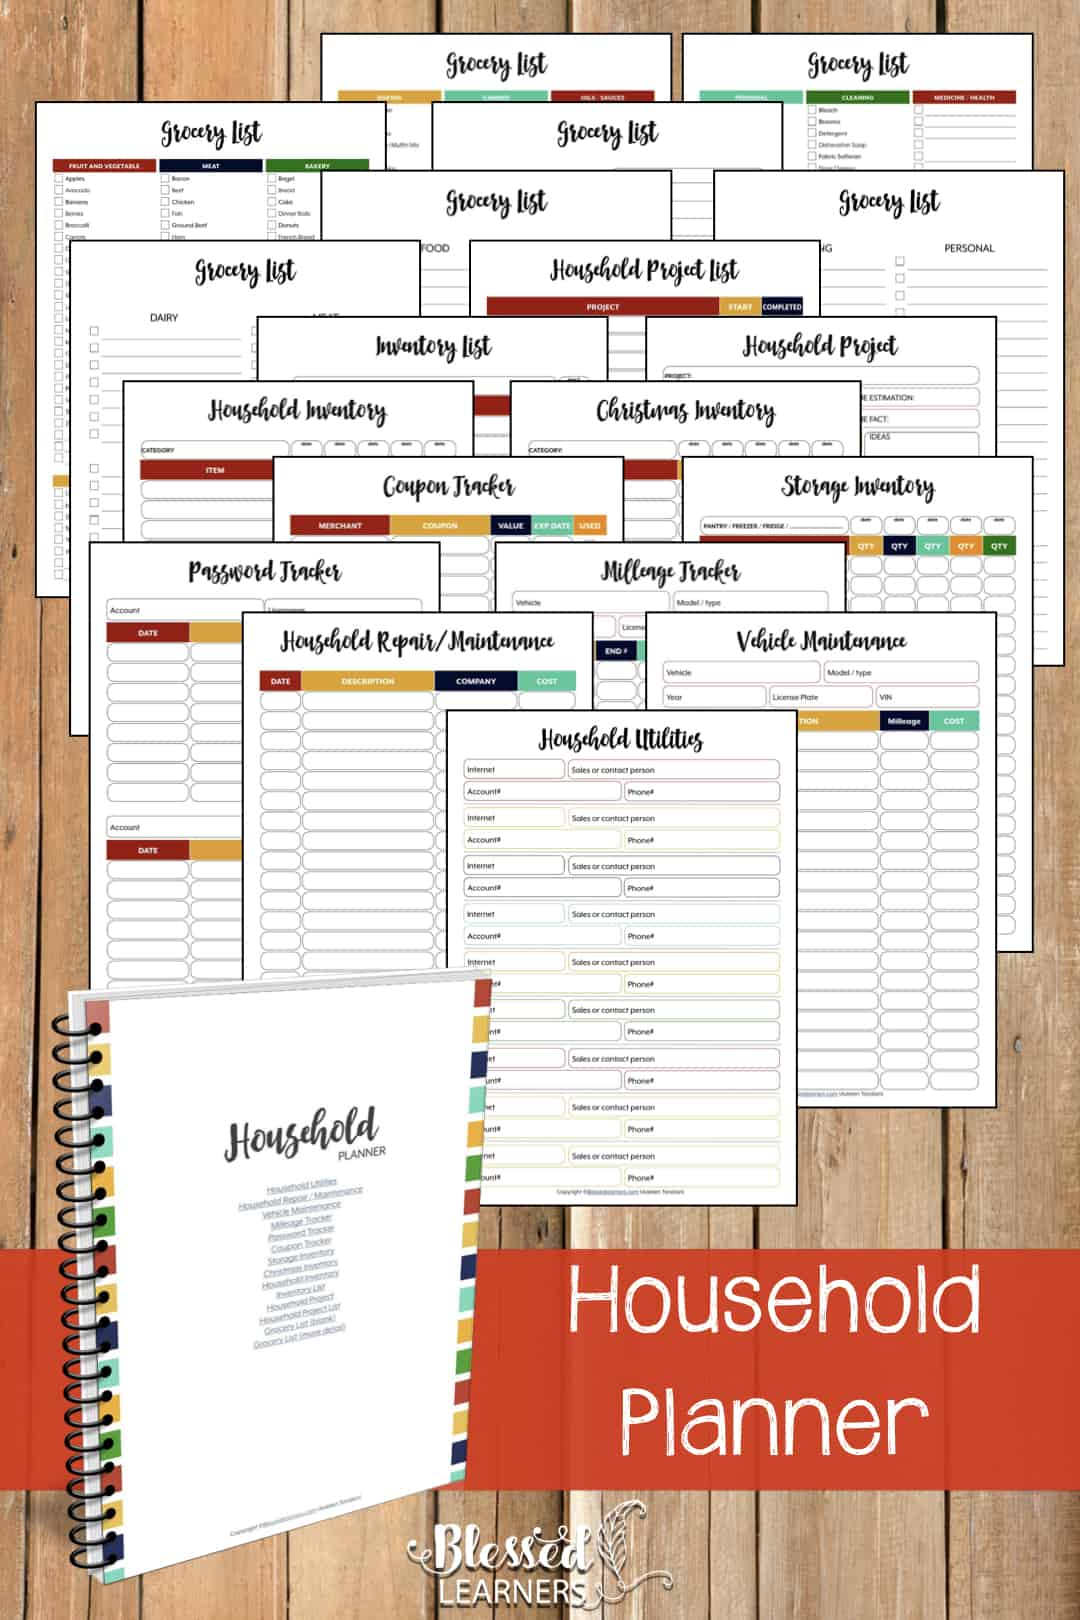 The Ultimate Life Planner Organizer for Moms is the perfect solution to getting most aspects of your home-and-work life well organized. A total of 230+ printable pages you can customize to use are included in the digital file. | Household Planner | #Planner #Printable #TimeManagement #Organizer